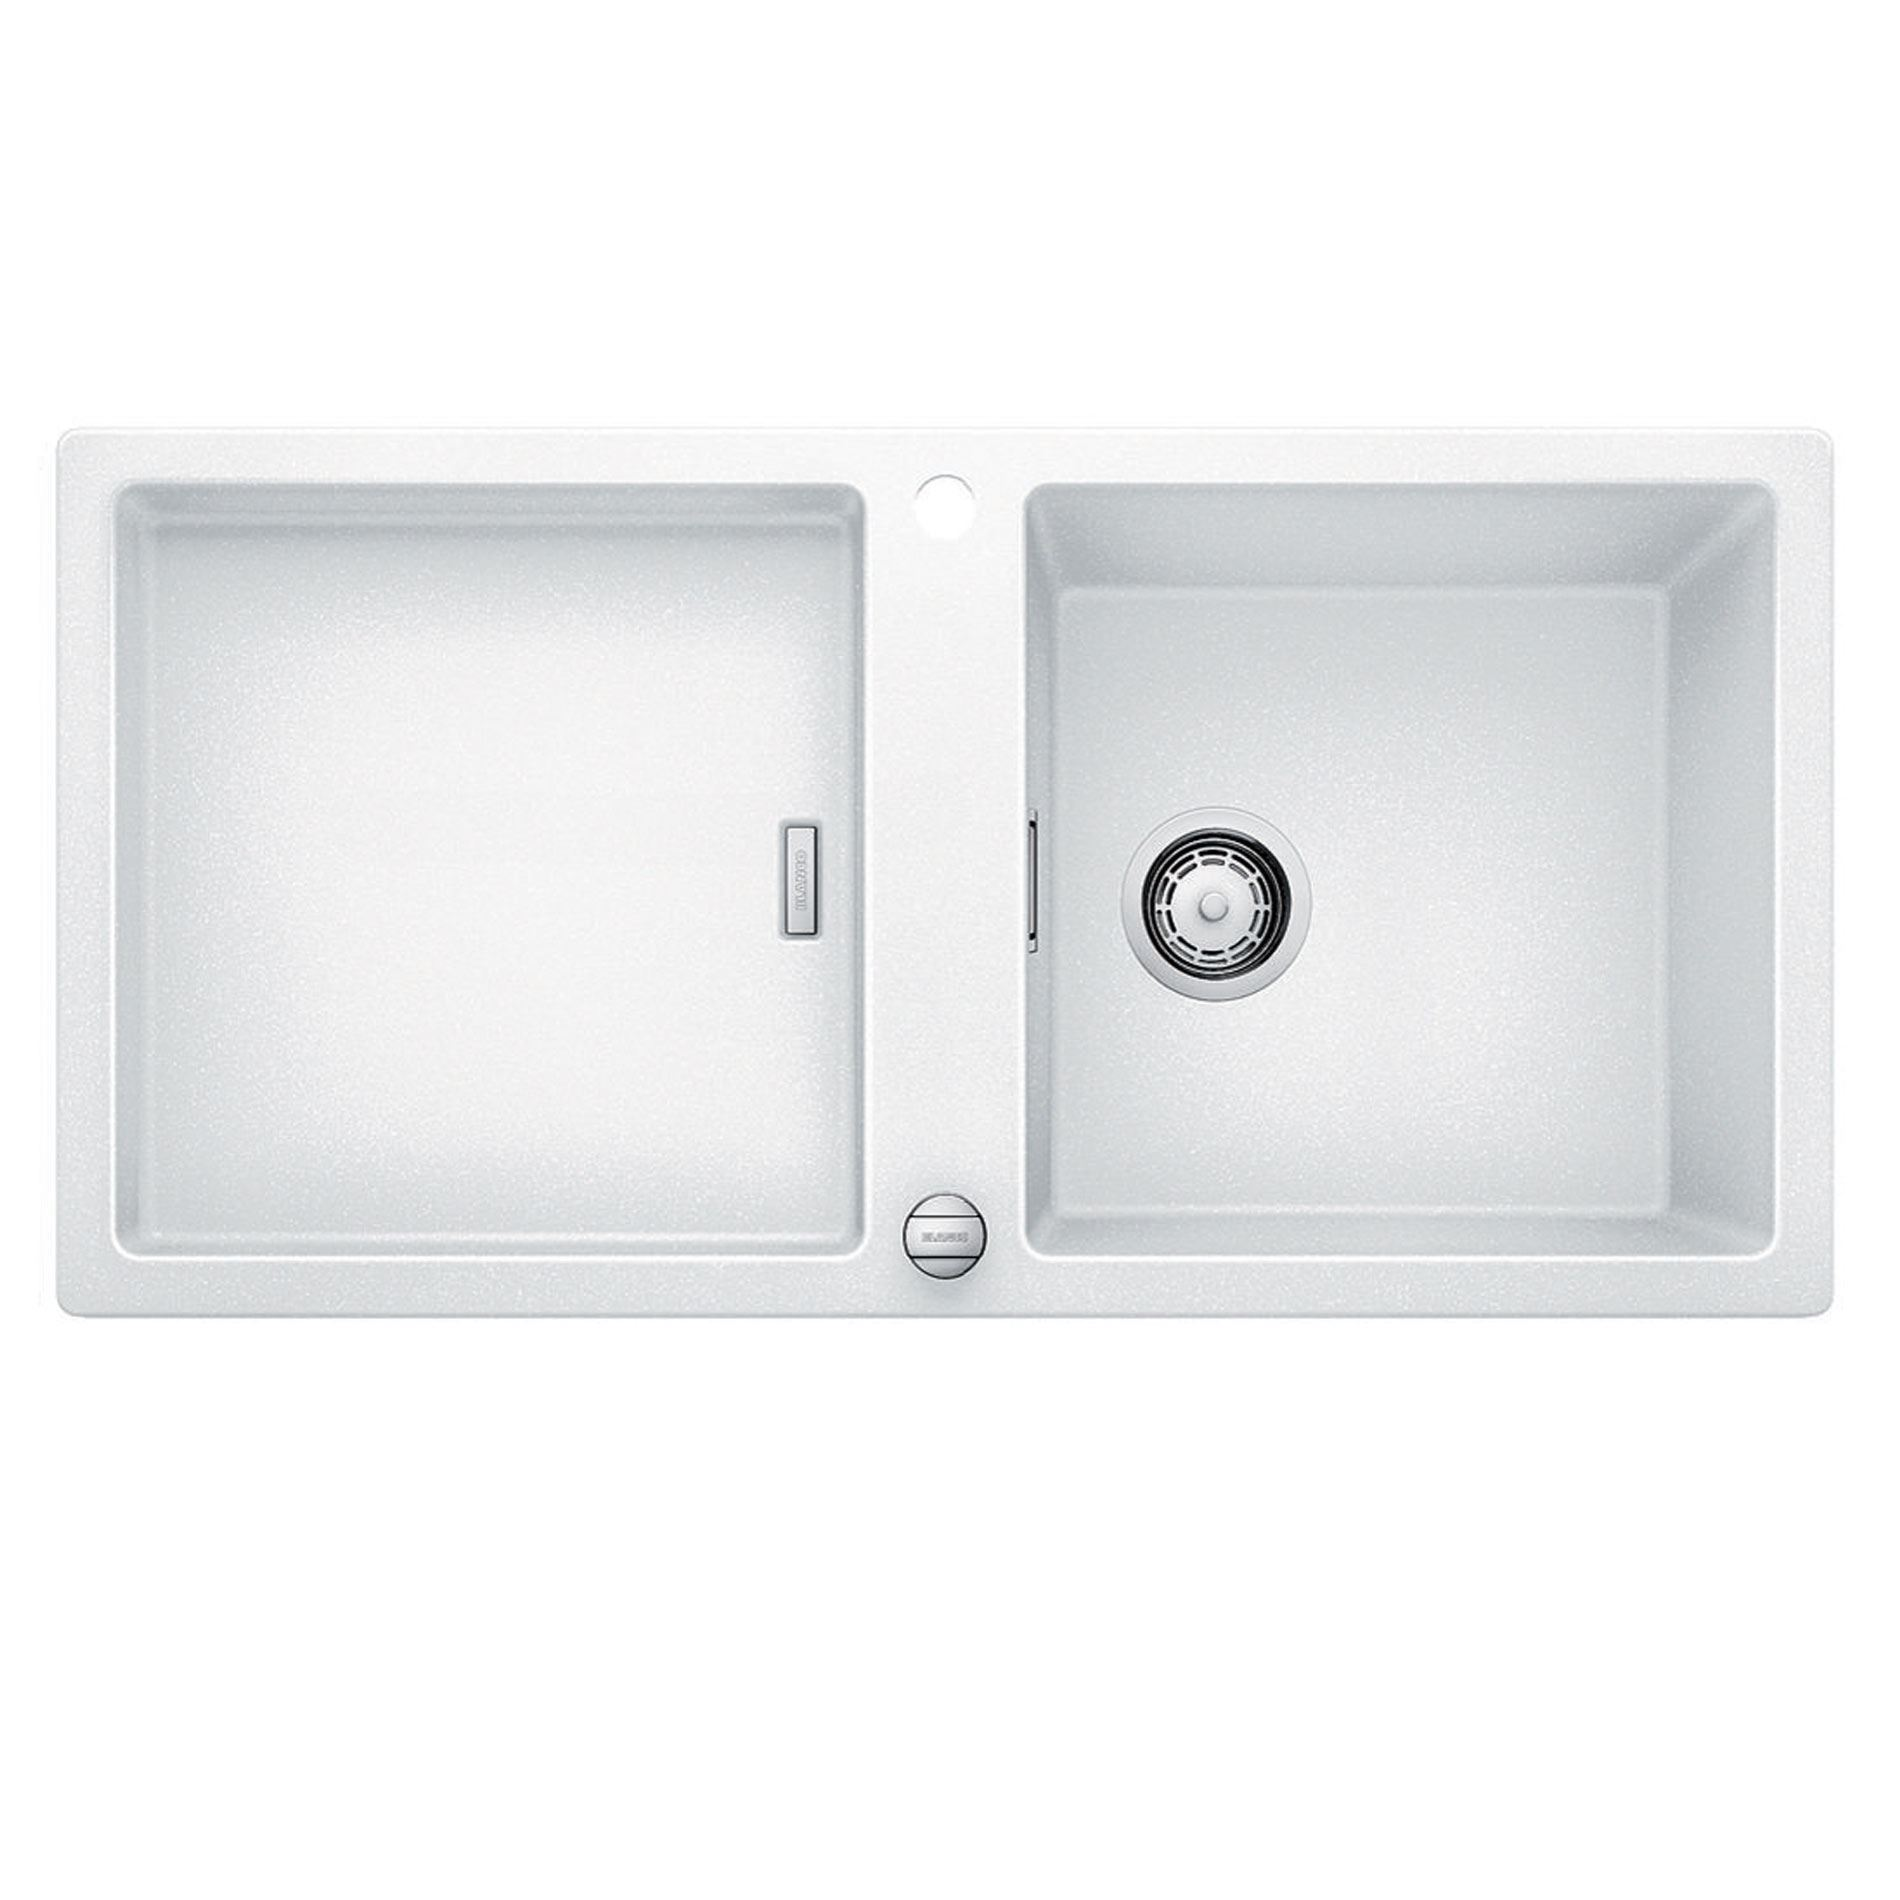 White Silgranit Sink : Blanco: Adon XL 6 S White Silgranit Sink - Kitchen Sinks & Taps